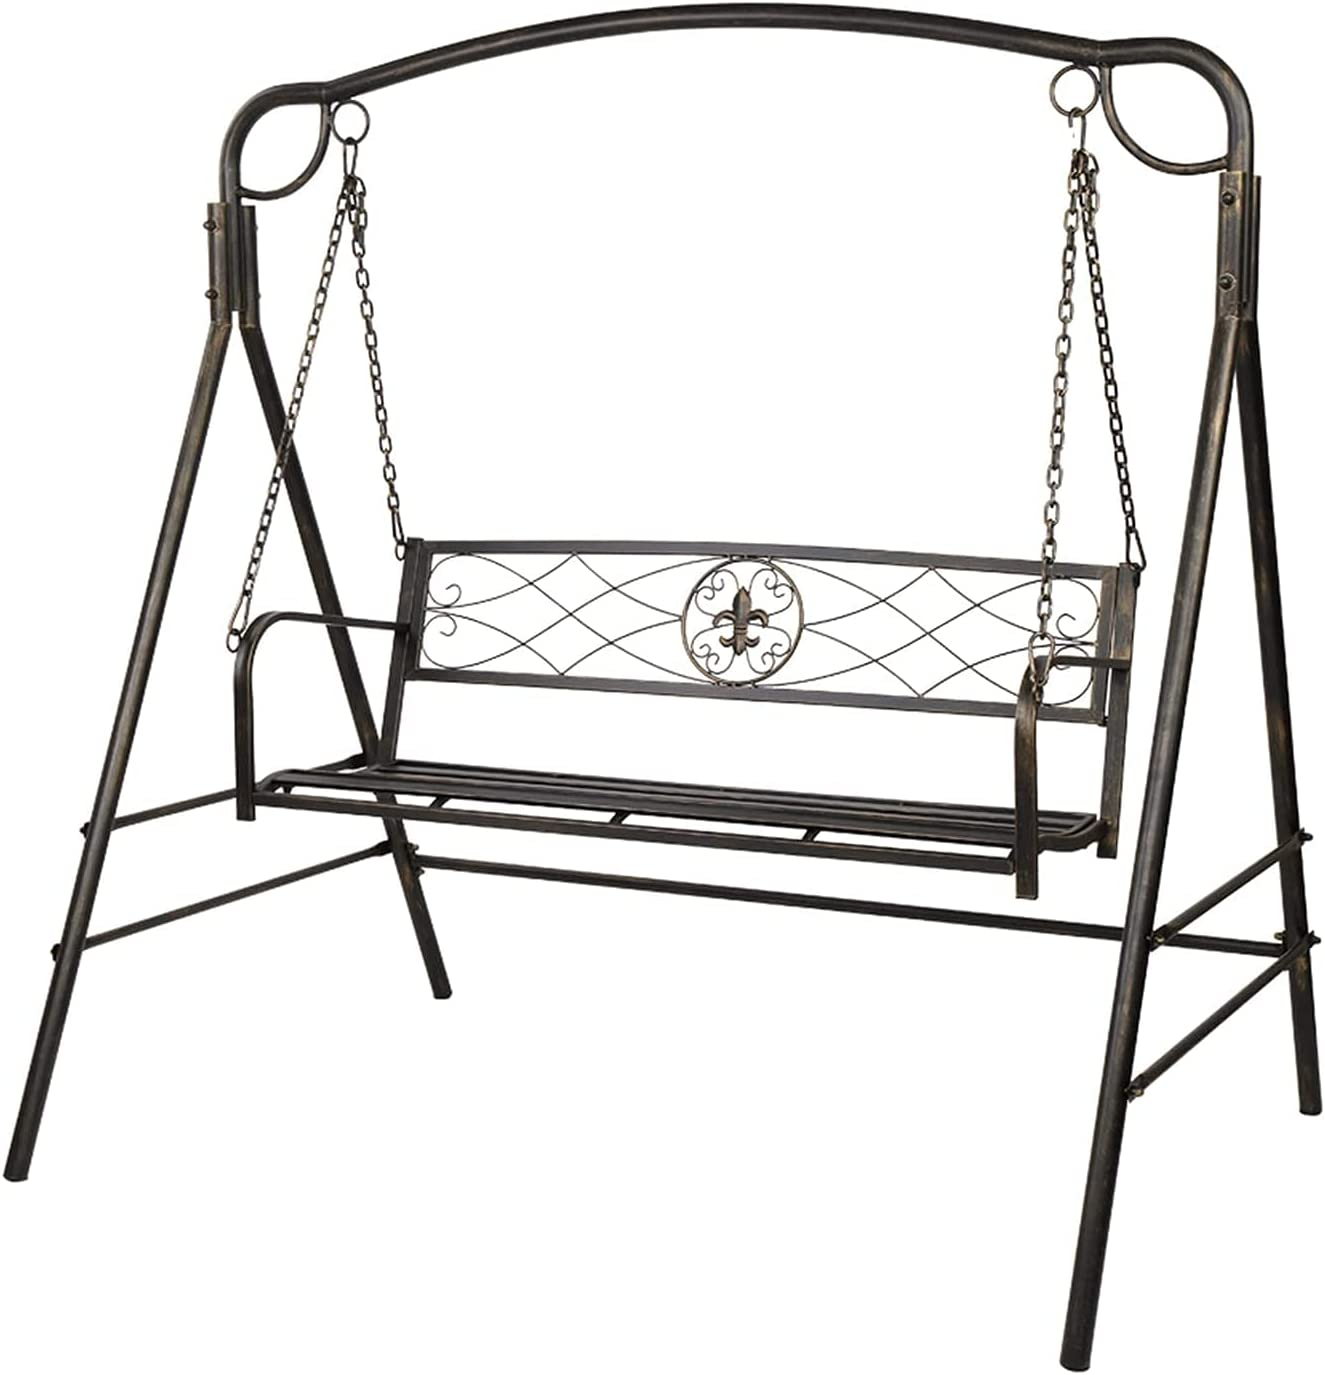 HDHUIXS Compactly Flat gift Tube Double Swing Line Back Br Chair Popular shop is the lowest price challenge Thin